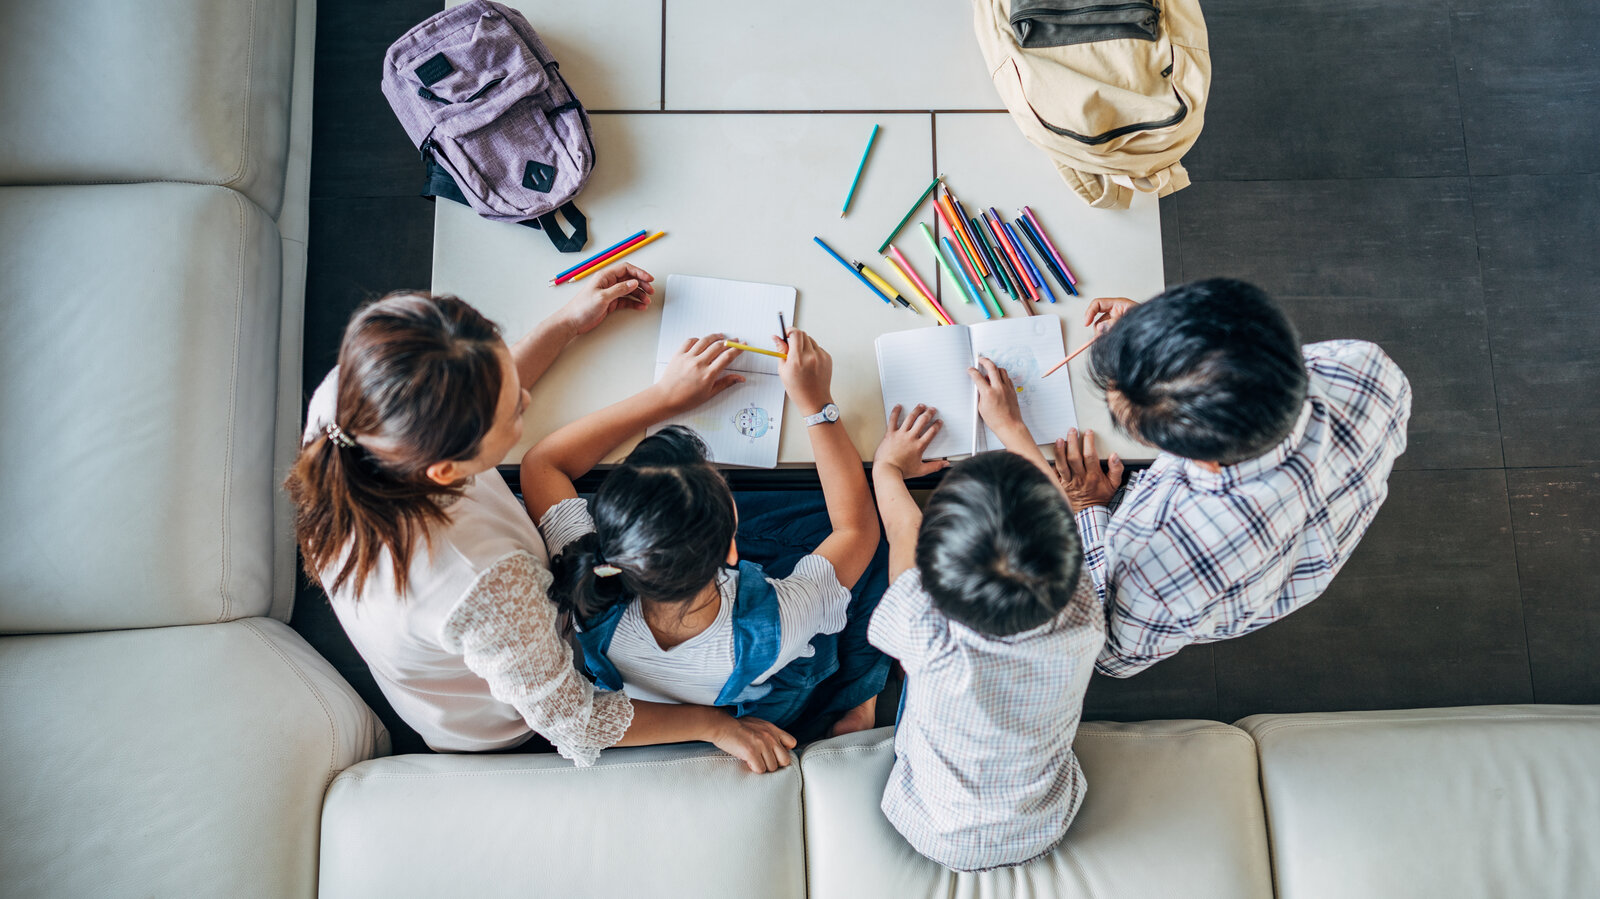 Group of people, parents doing homework with two children together at home.